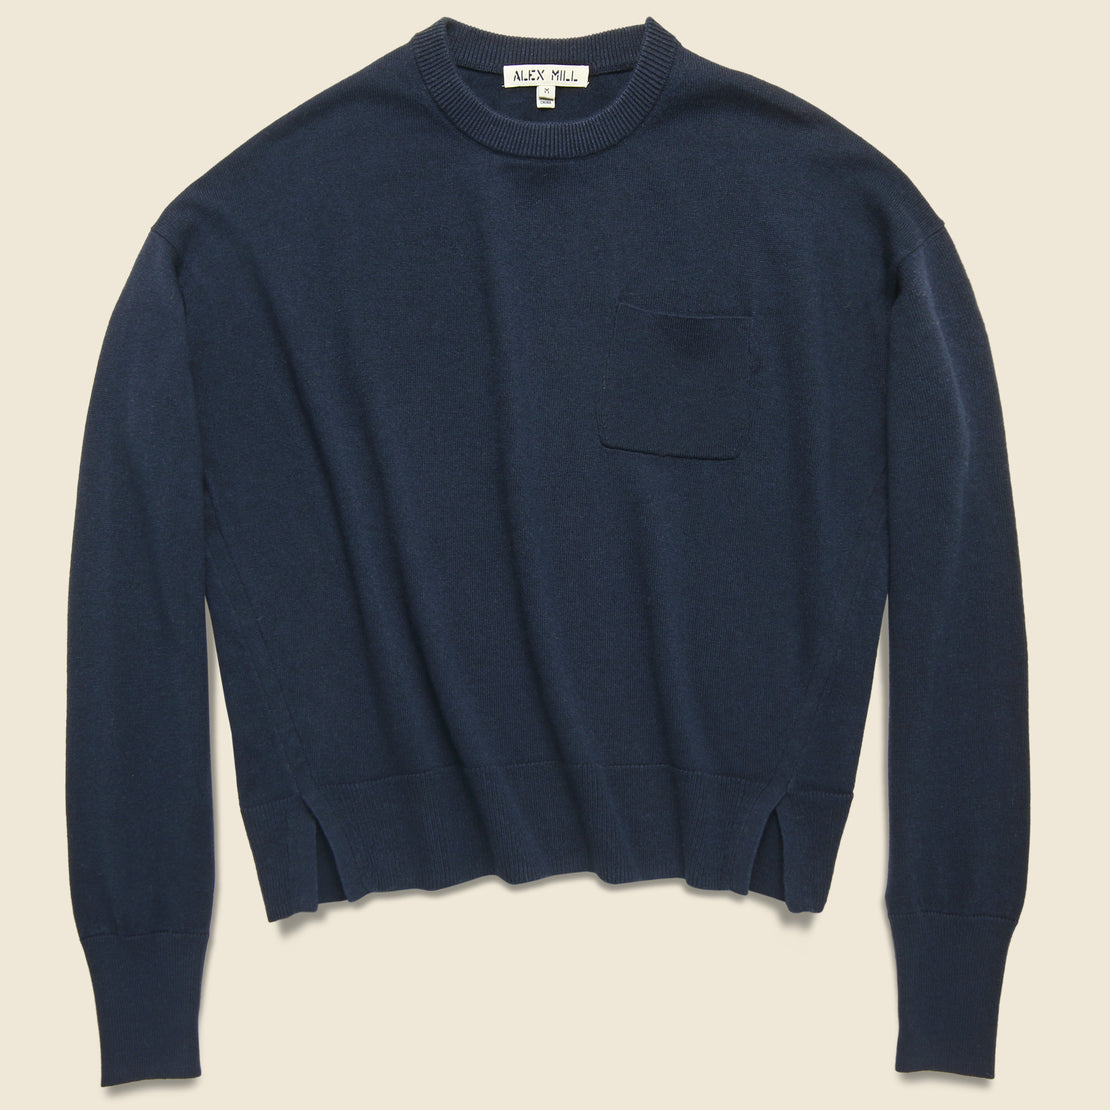 Alex Mill Cropped Pocket Sweater - Navy